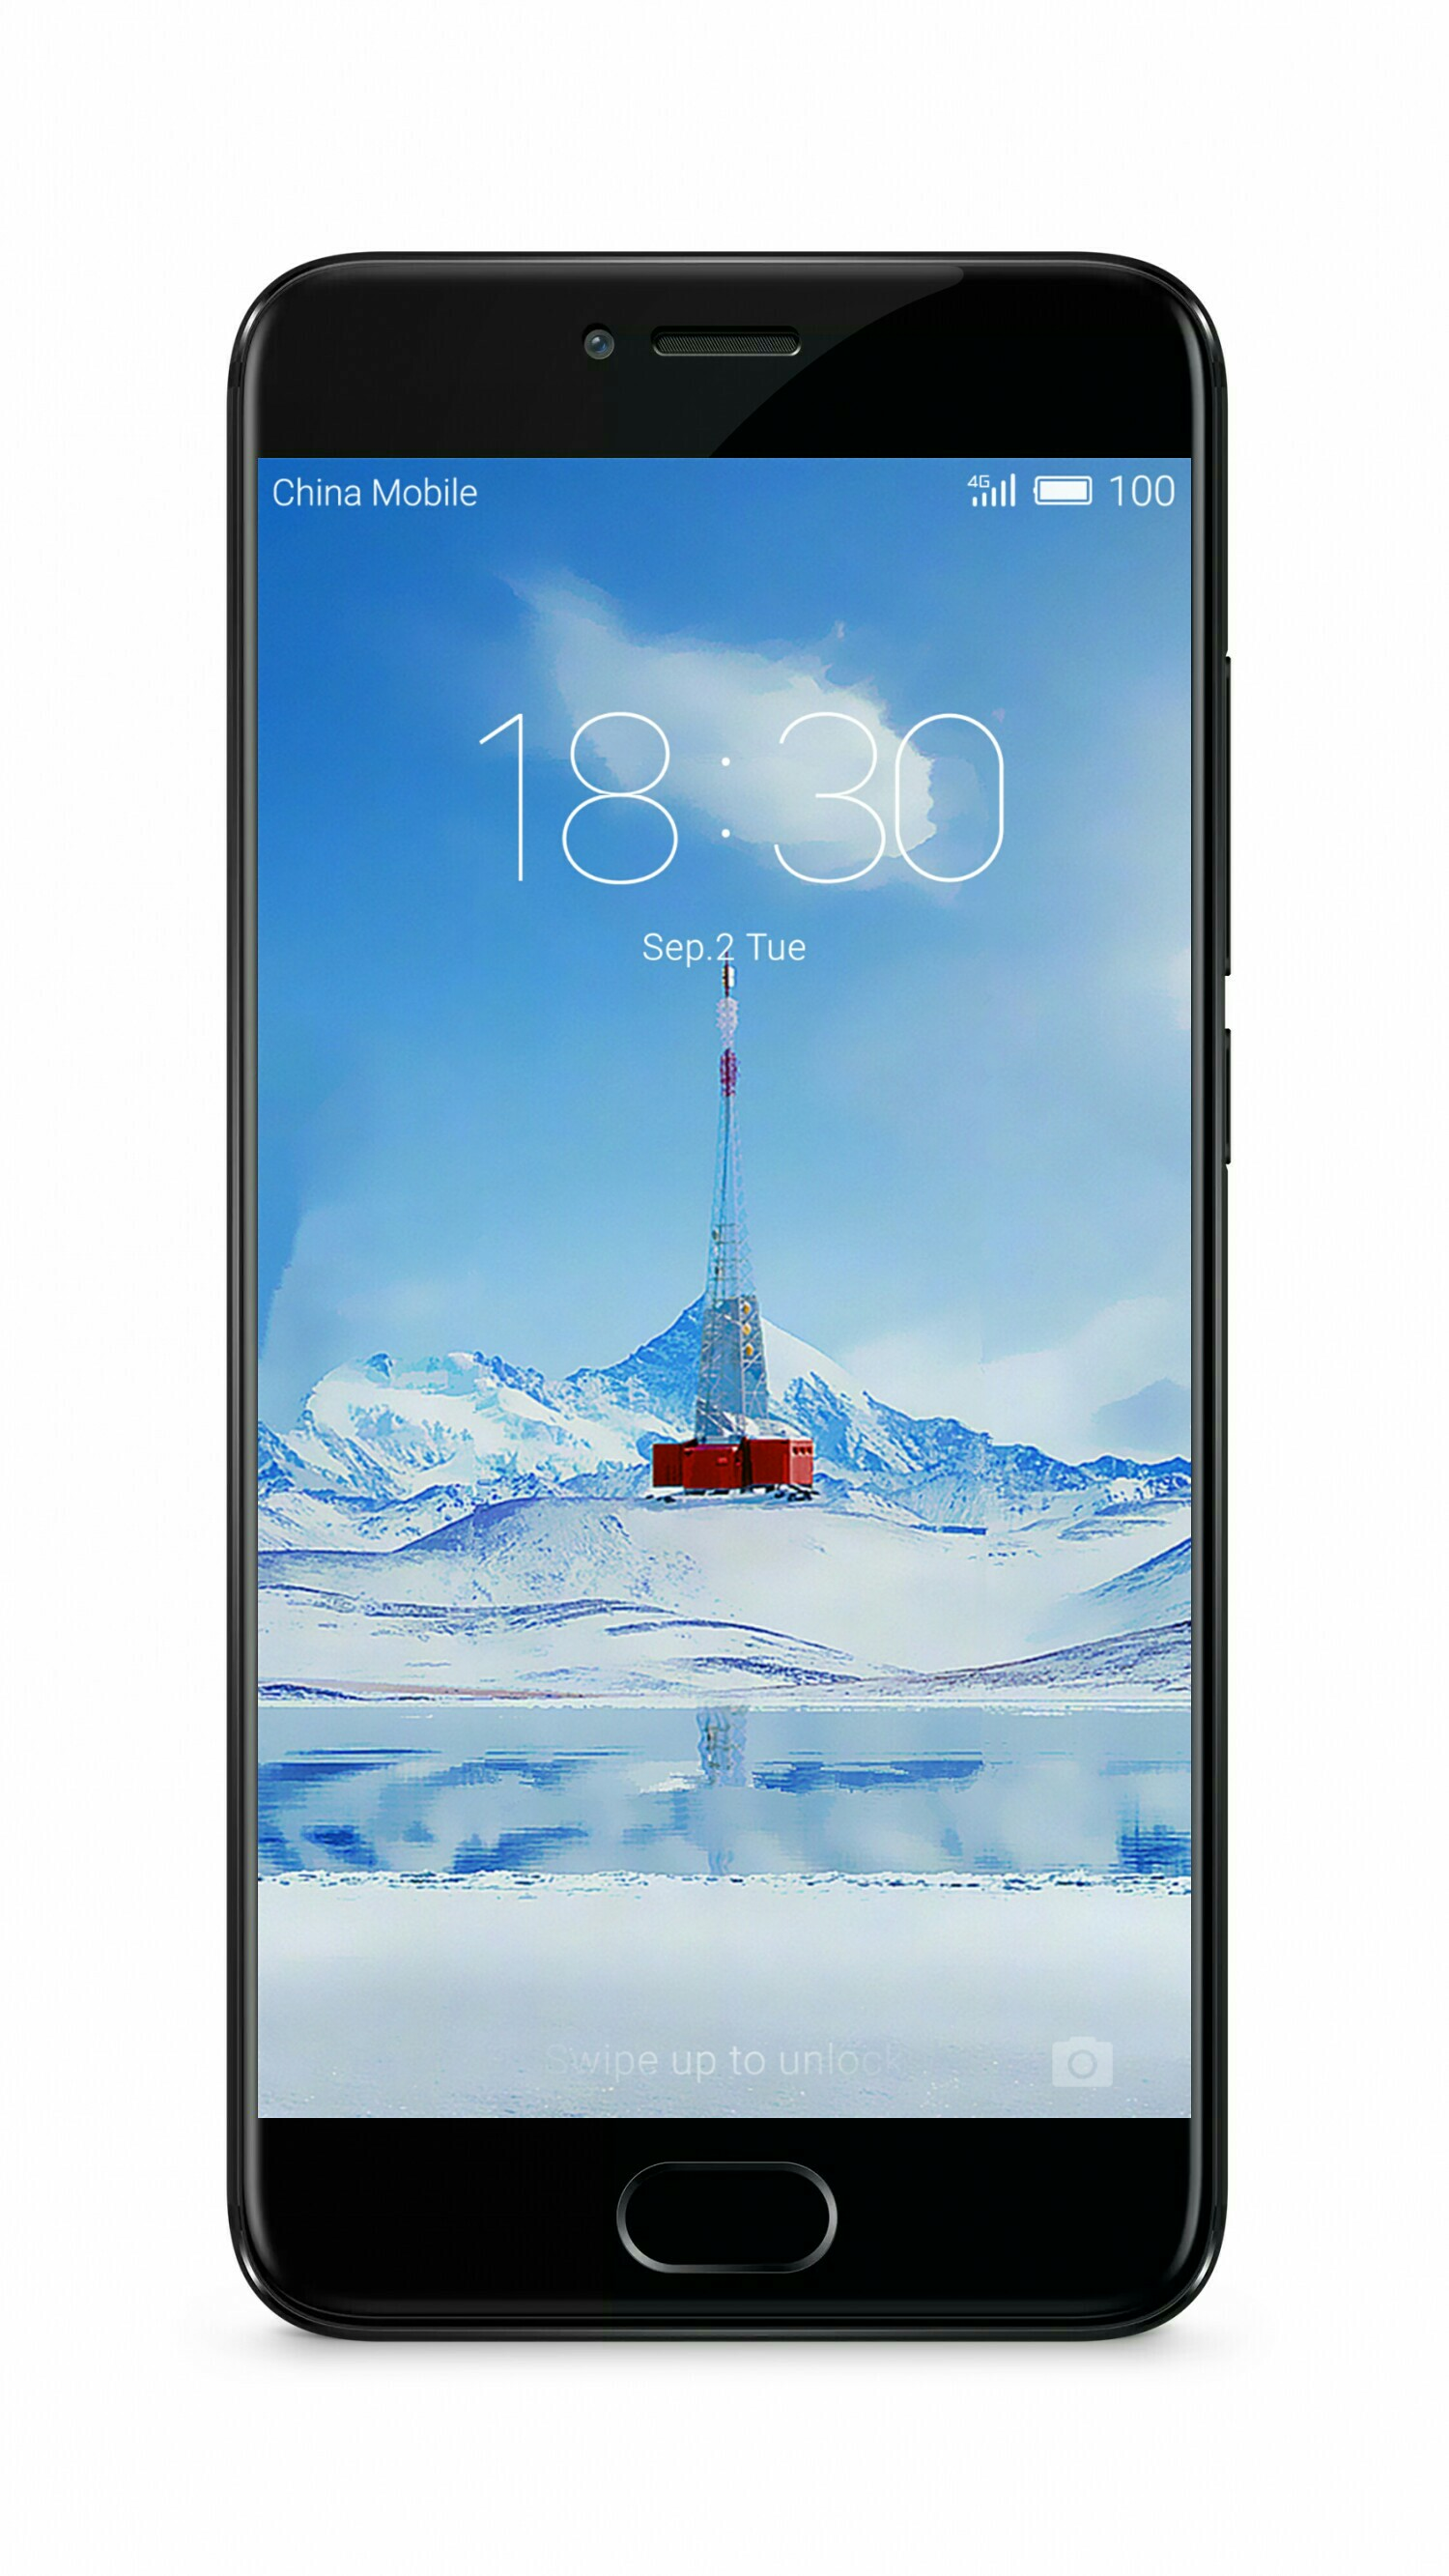 Xiaomi_MiMix2_Preview_2.jpg